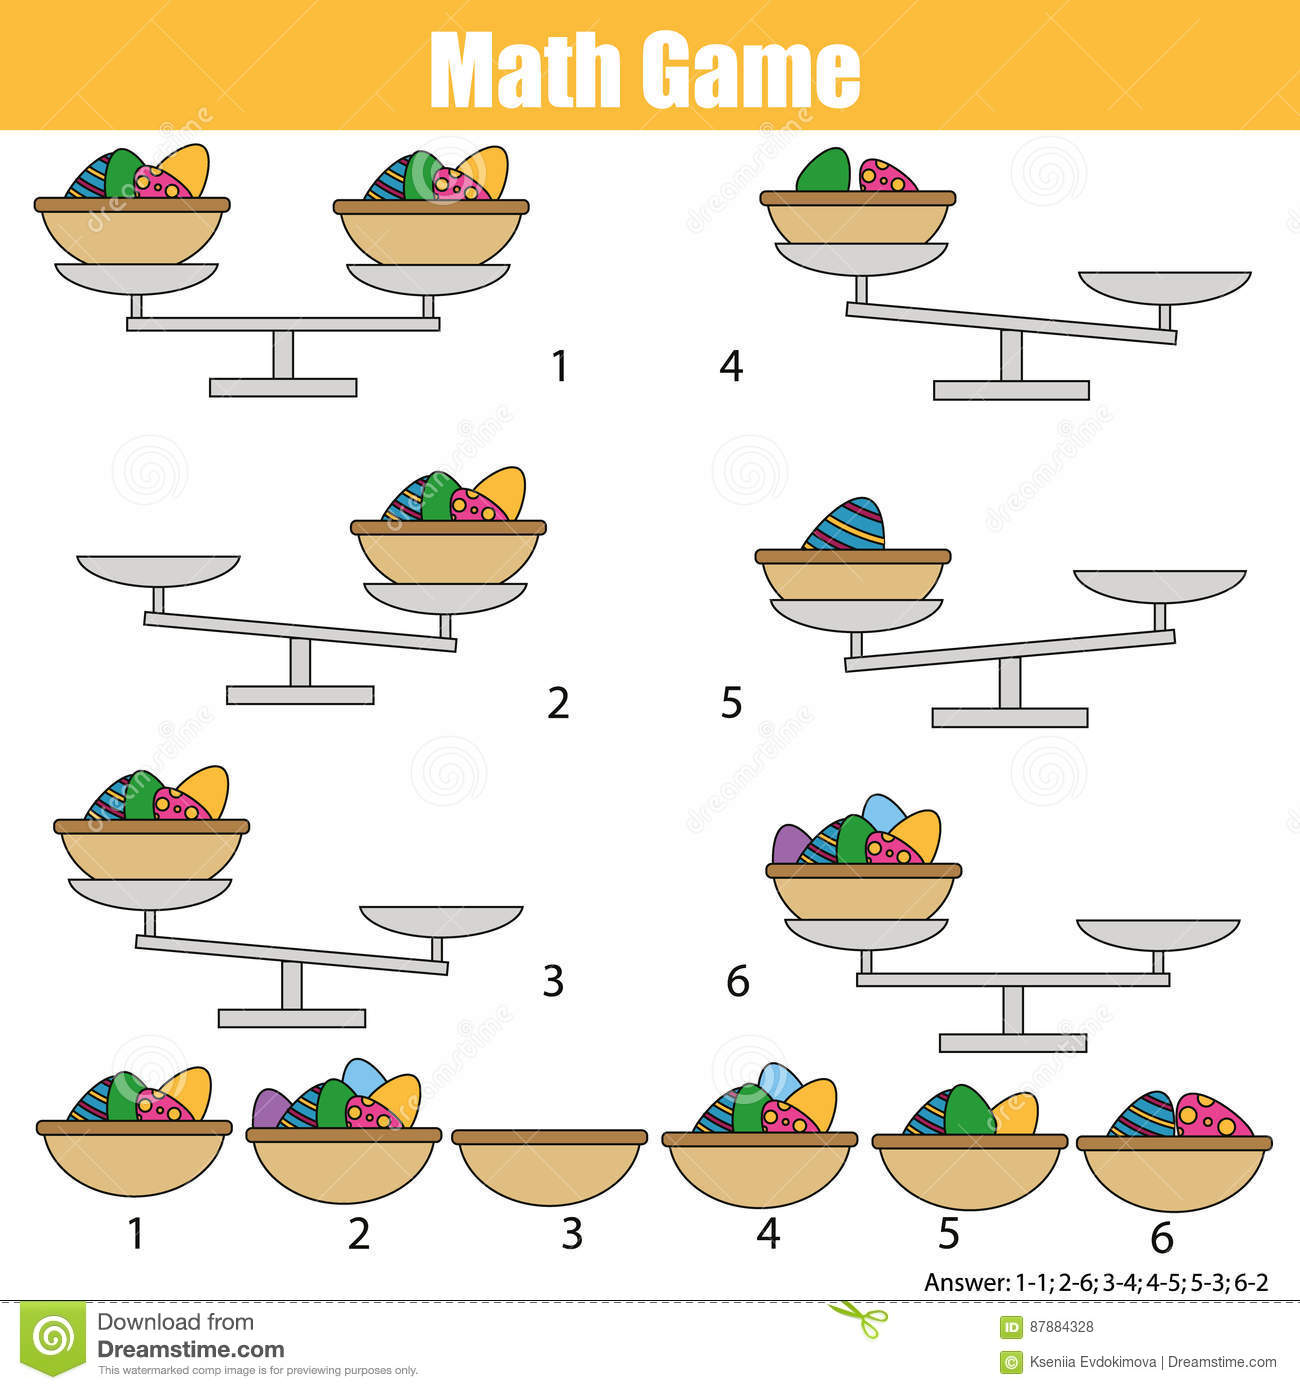 Mathematics educational game for children. balance the scale. Easter eggs in basket